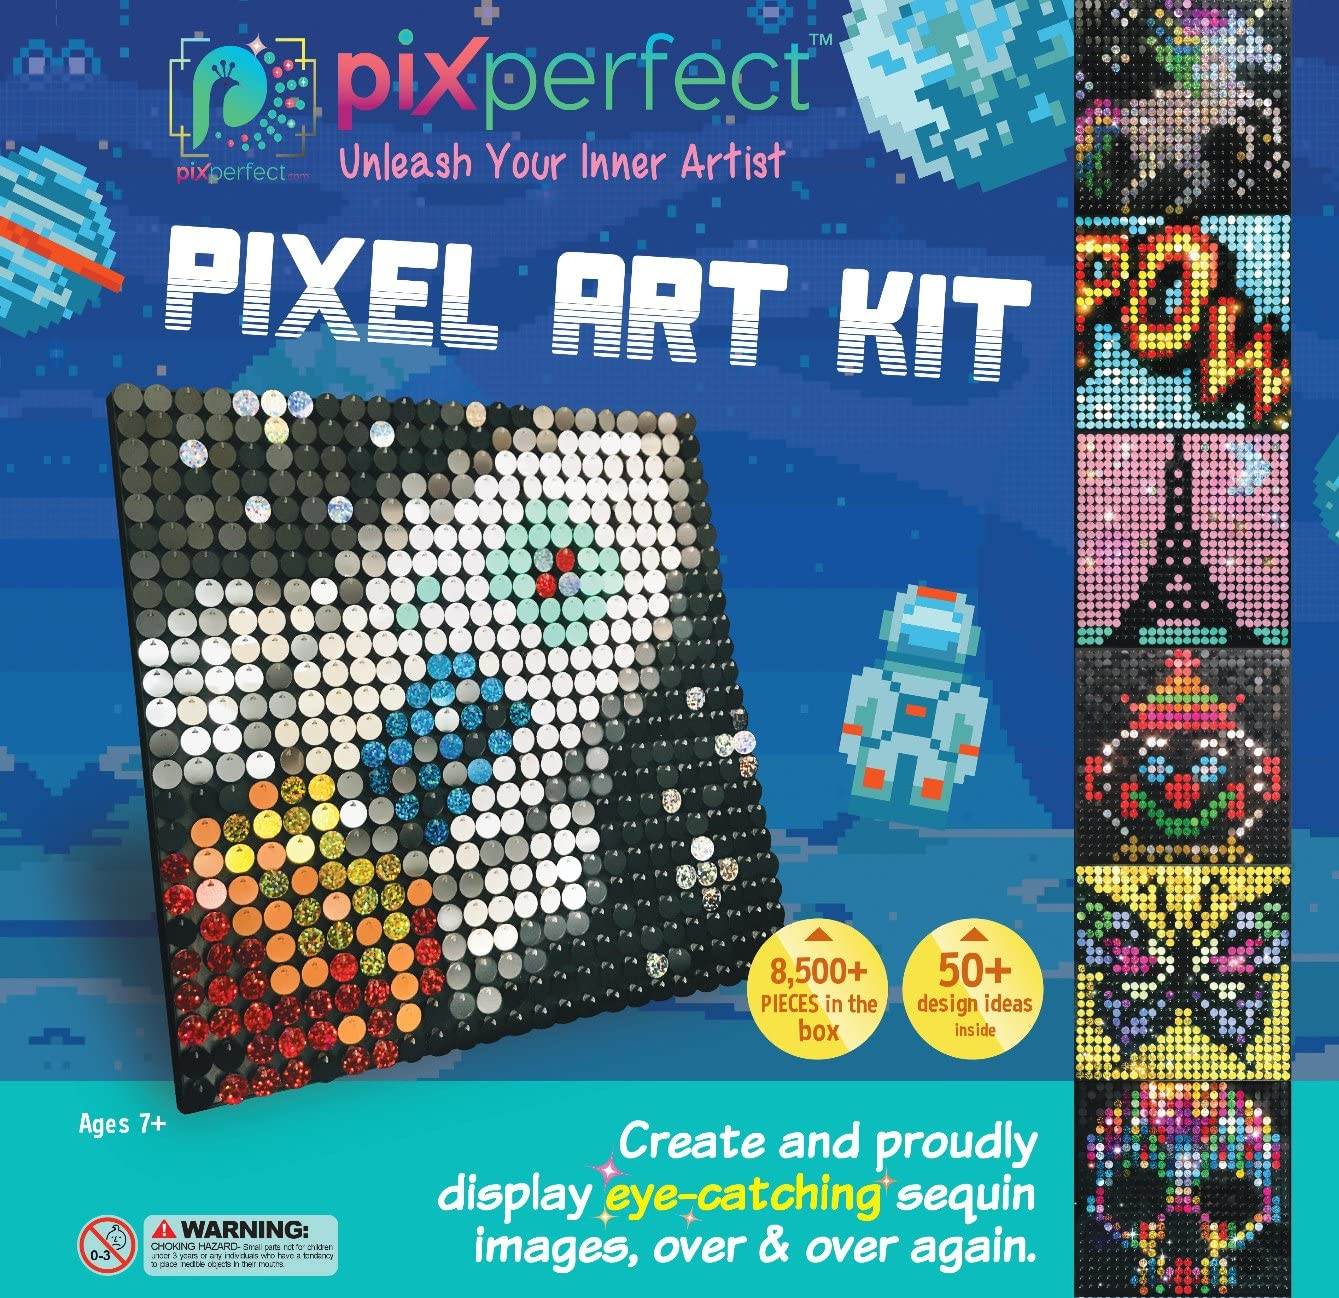 Amazon Com Pix Perfect Pixel Art Kit For Fans Of Pixel Art Perler Beads Crafts Or Sequins 20 Colors 50 Design Ideas Hours Of Creative Fun Toys Games